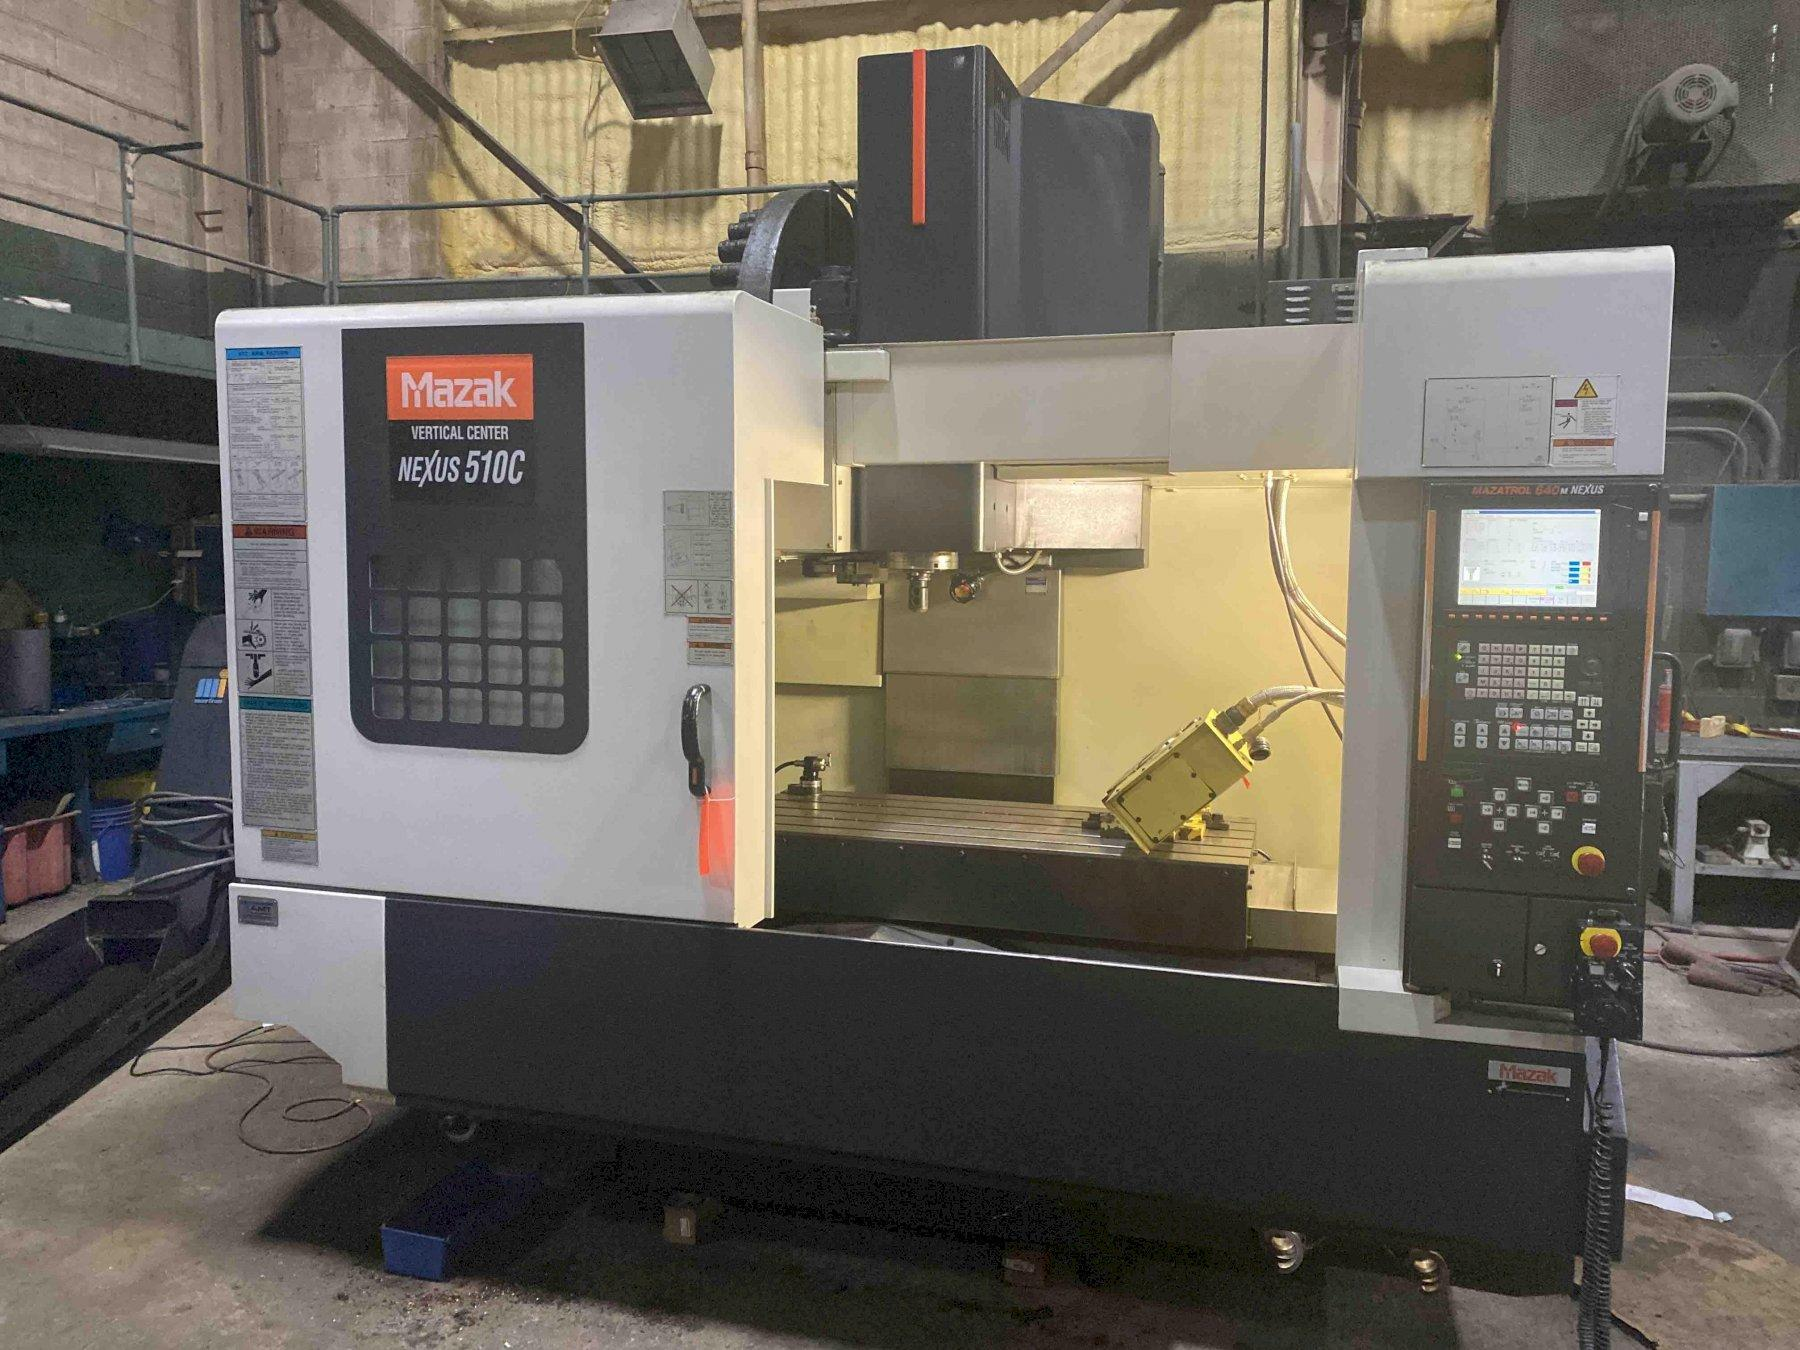 Mazak VCN-Nexus 510C CNC Vertical Machining Center, 640M Control, 41